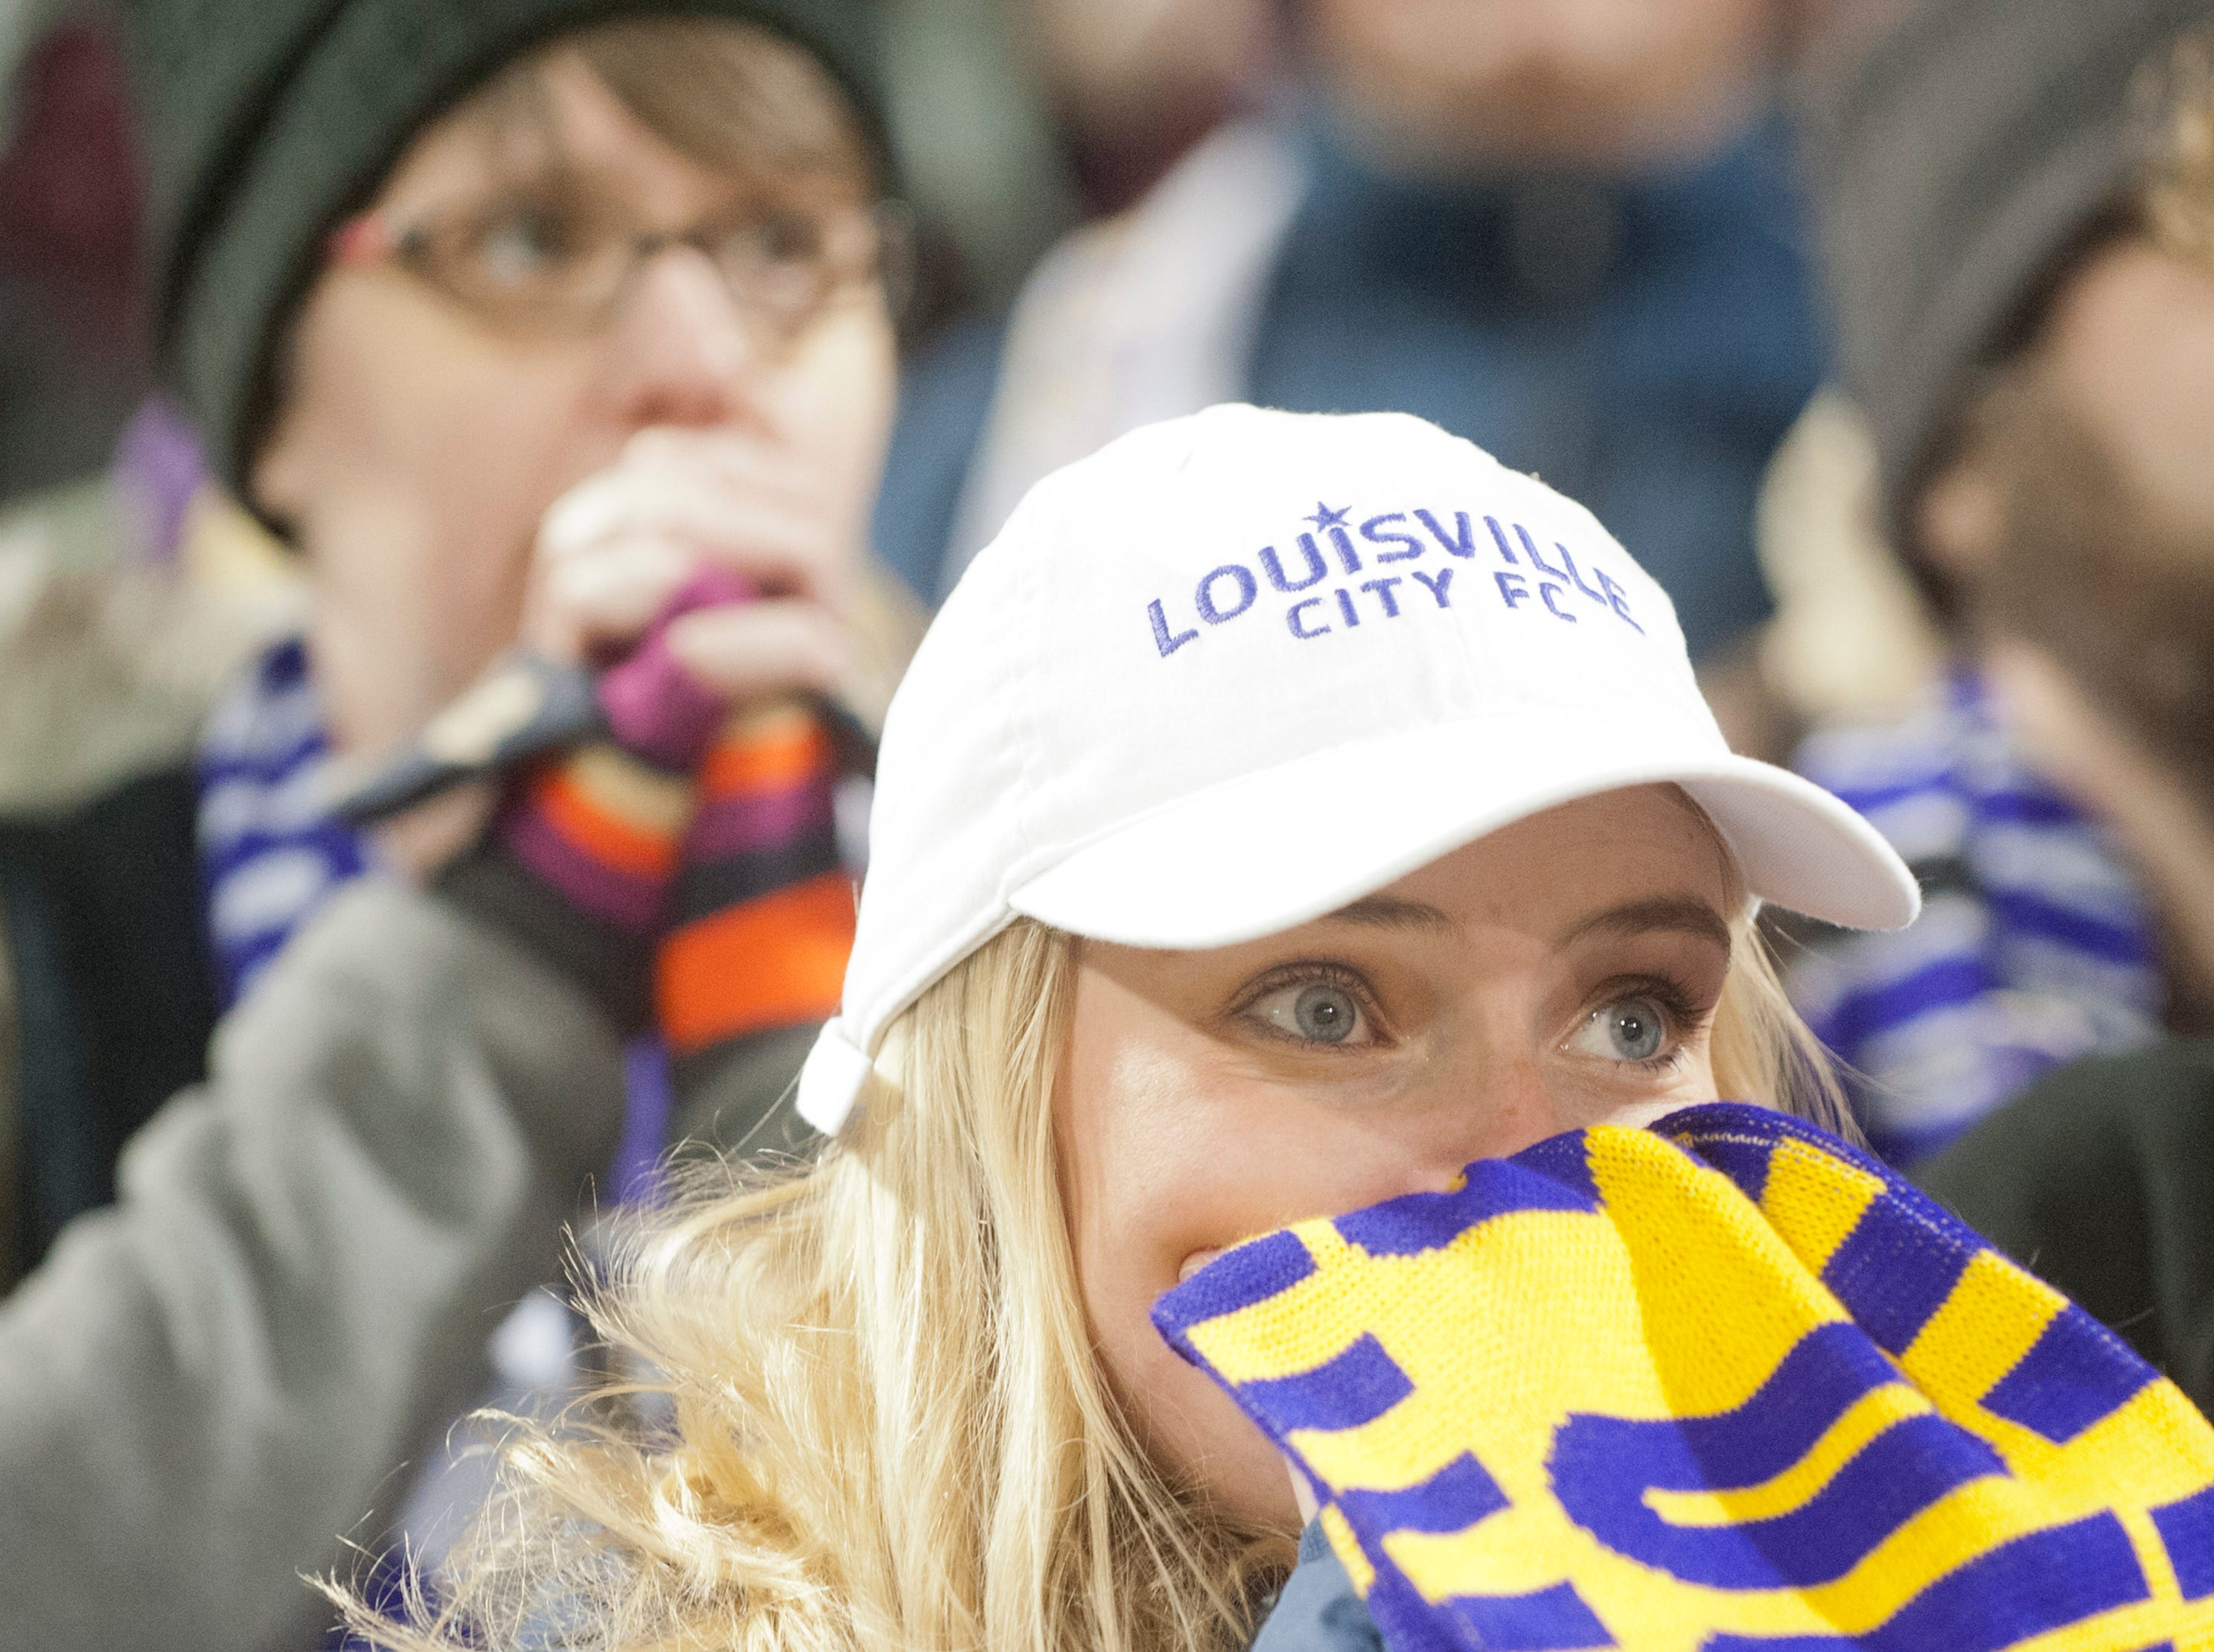 A Louisville City fan looks concerned as her team takes on the Phoenix Rising FC for the 2018 USL Cup.November 08, 2018